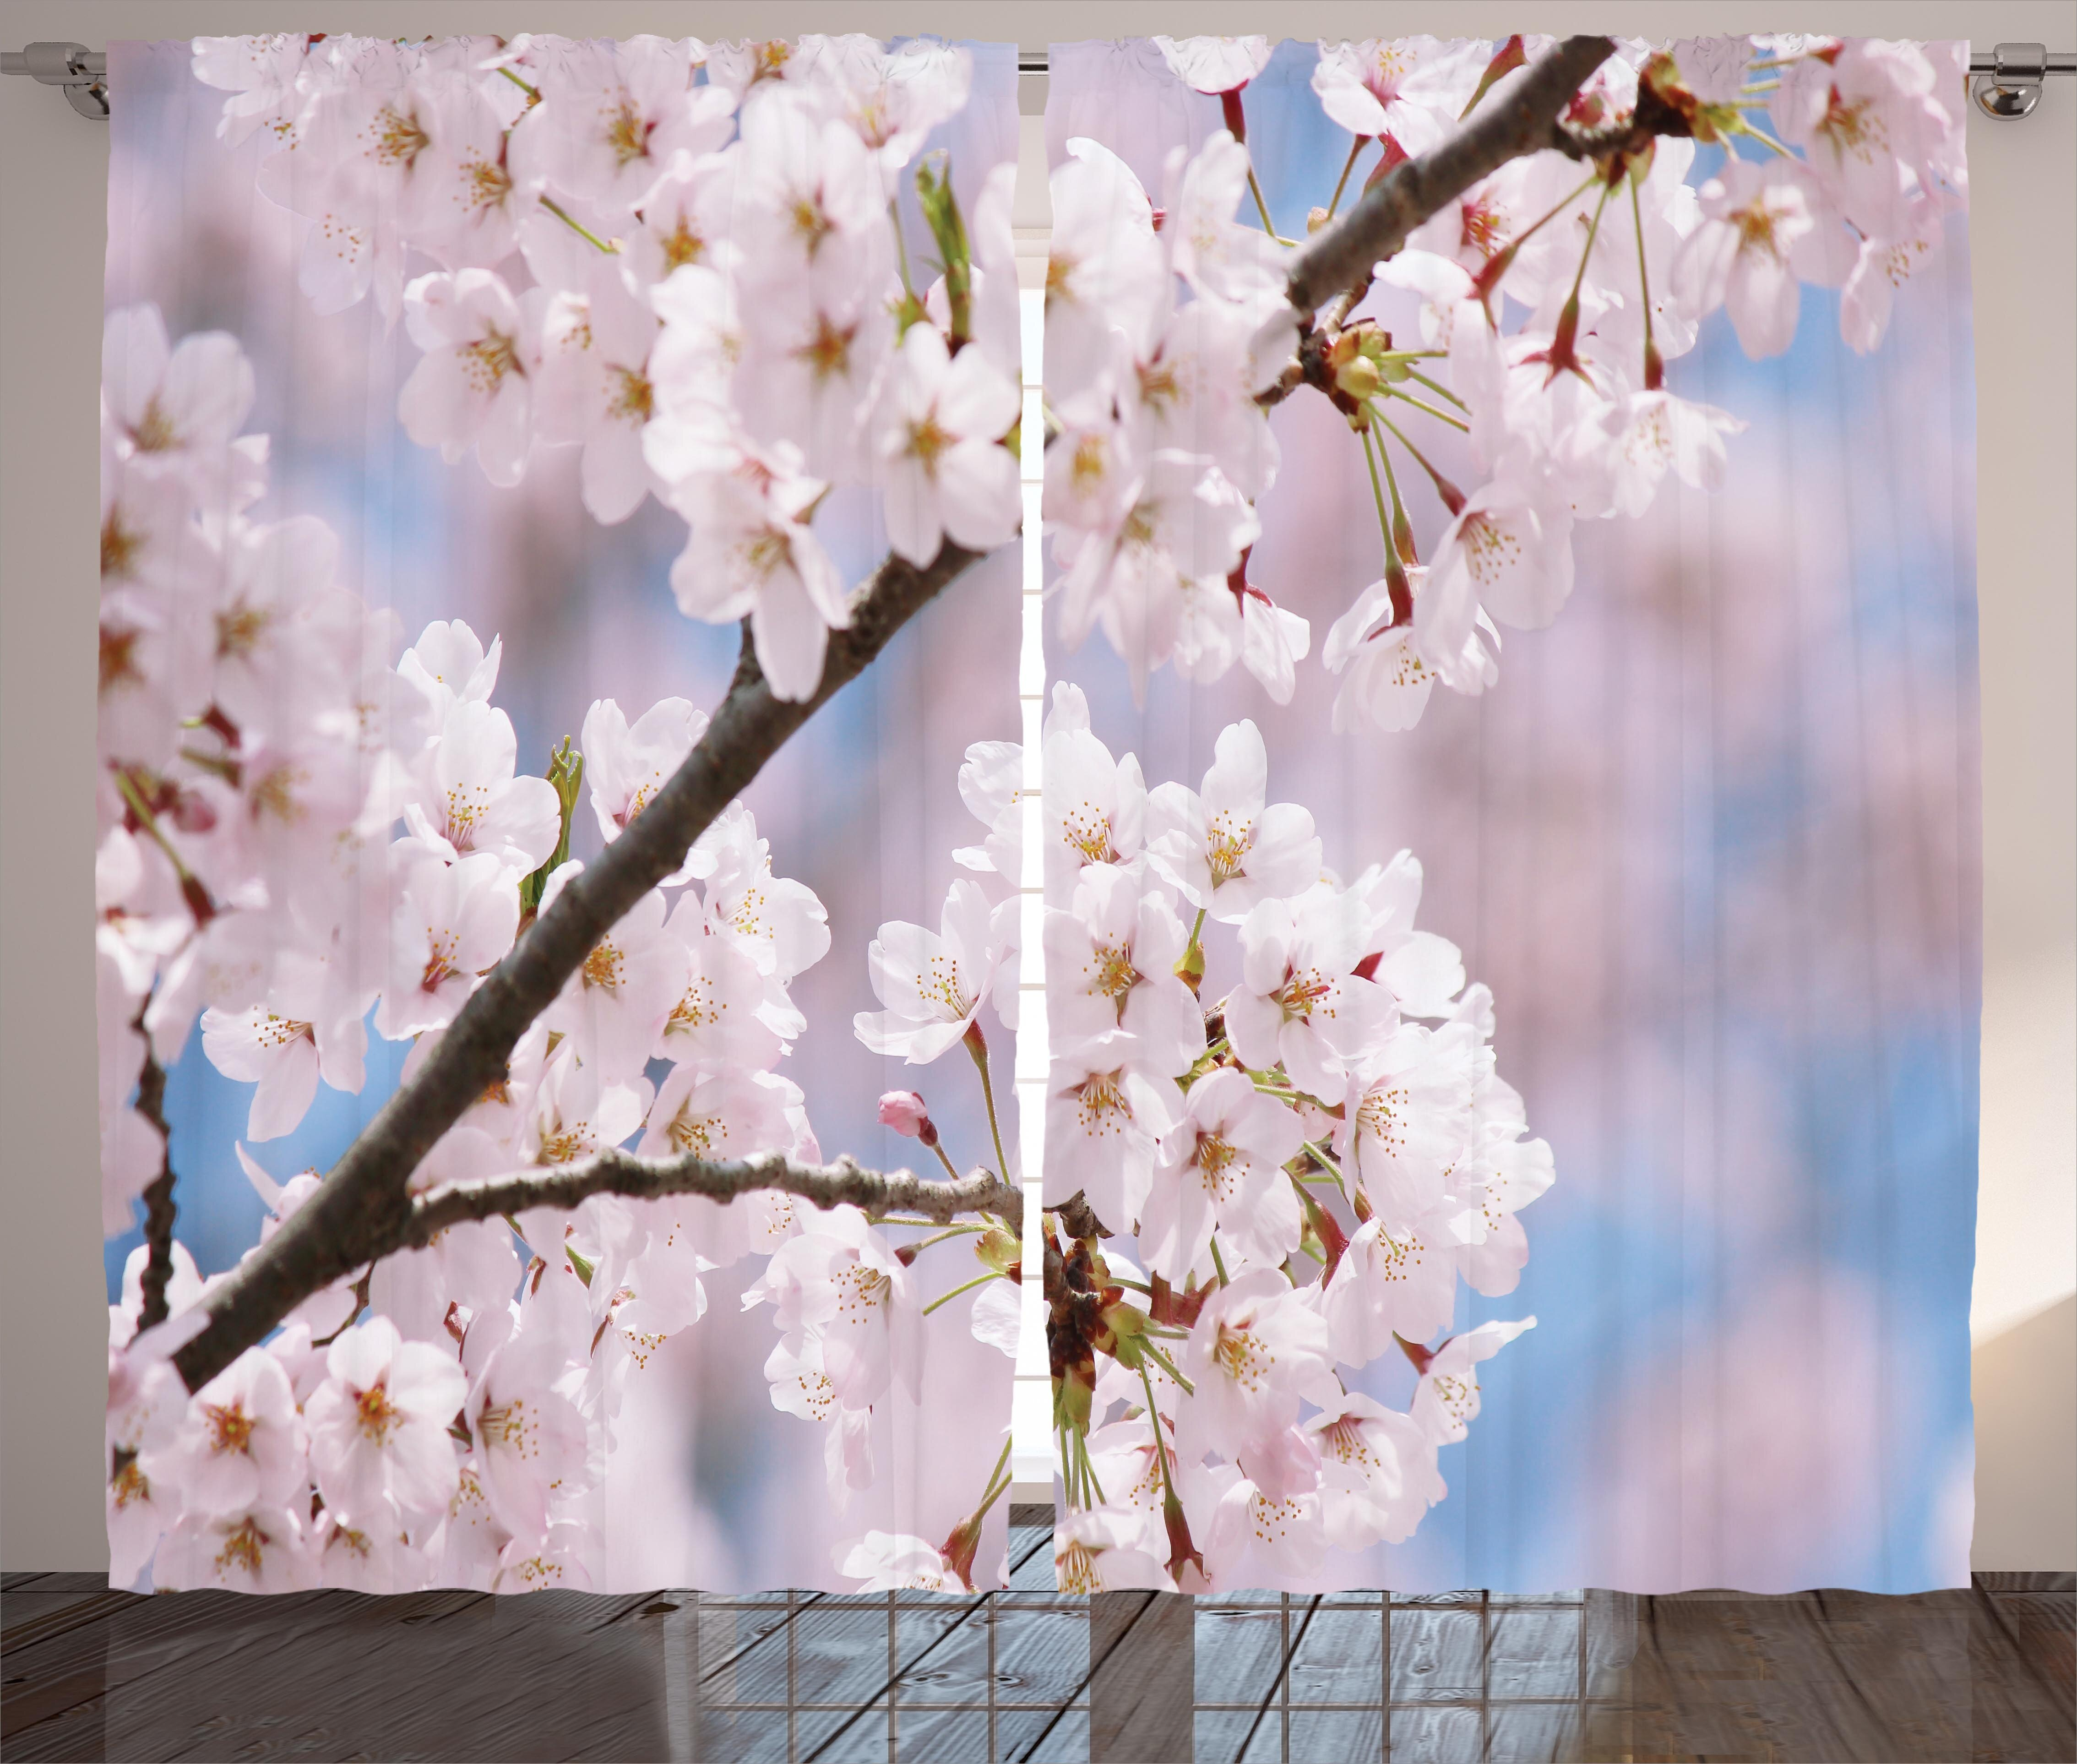 East Urban Home Spring Floral Tree Branches Cherry Blossom